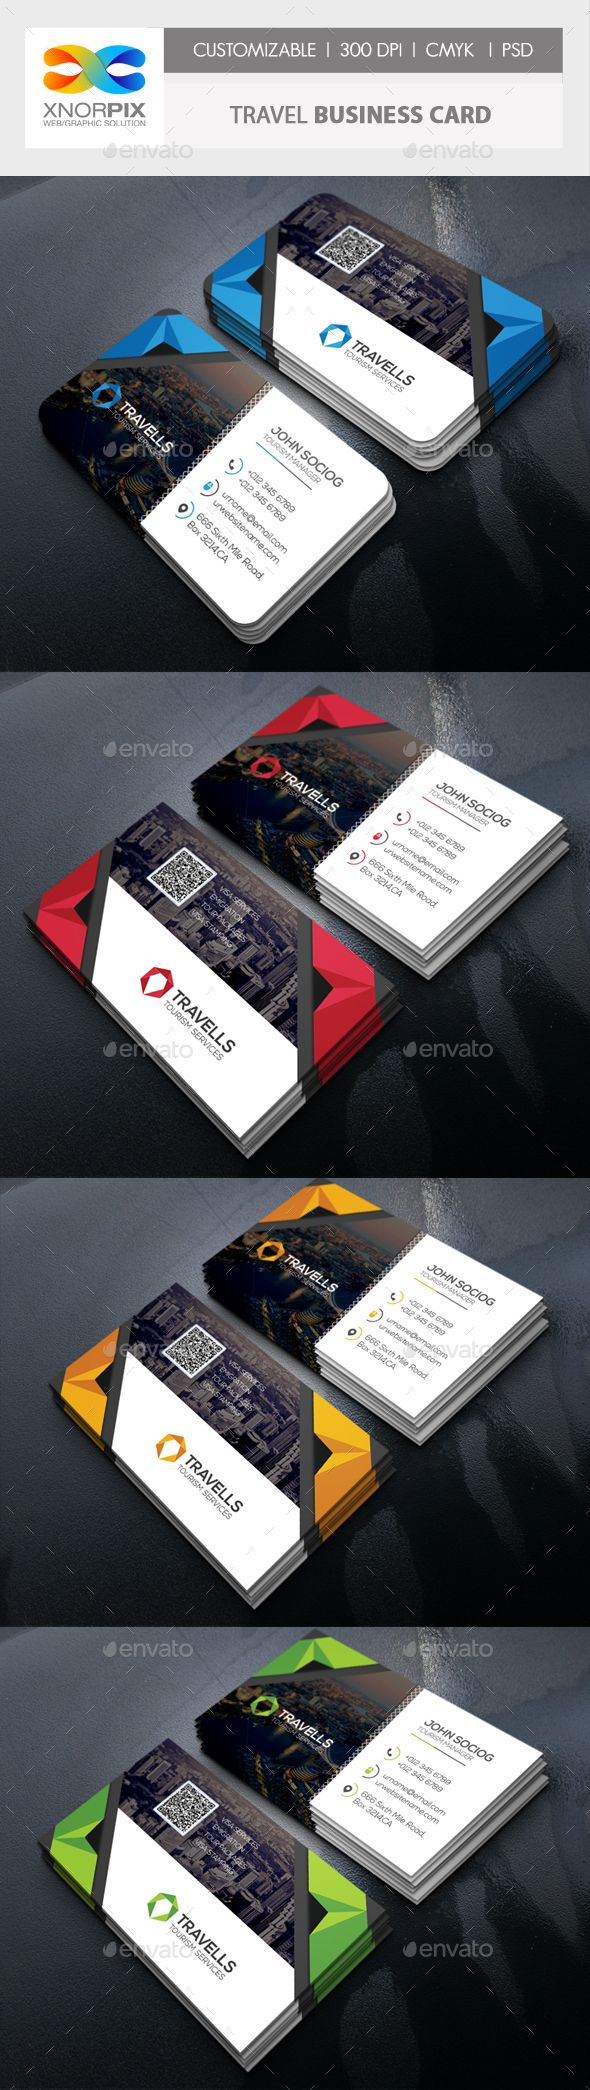 75 best business card images on pinterest business cards travel business card magicingreecefo Choice Image